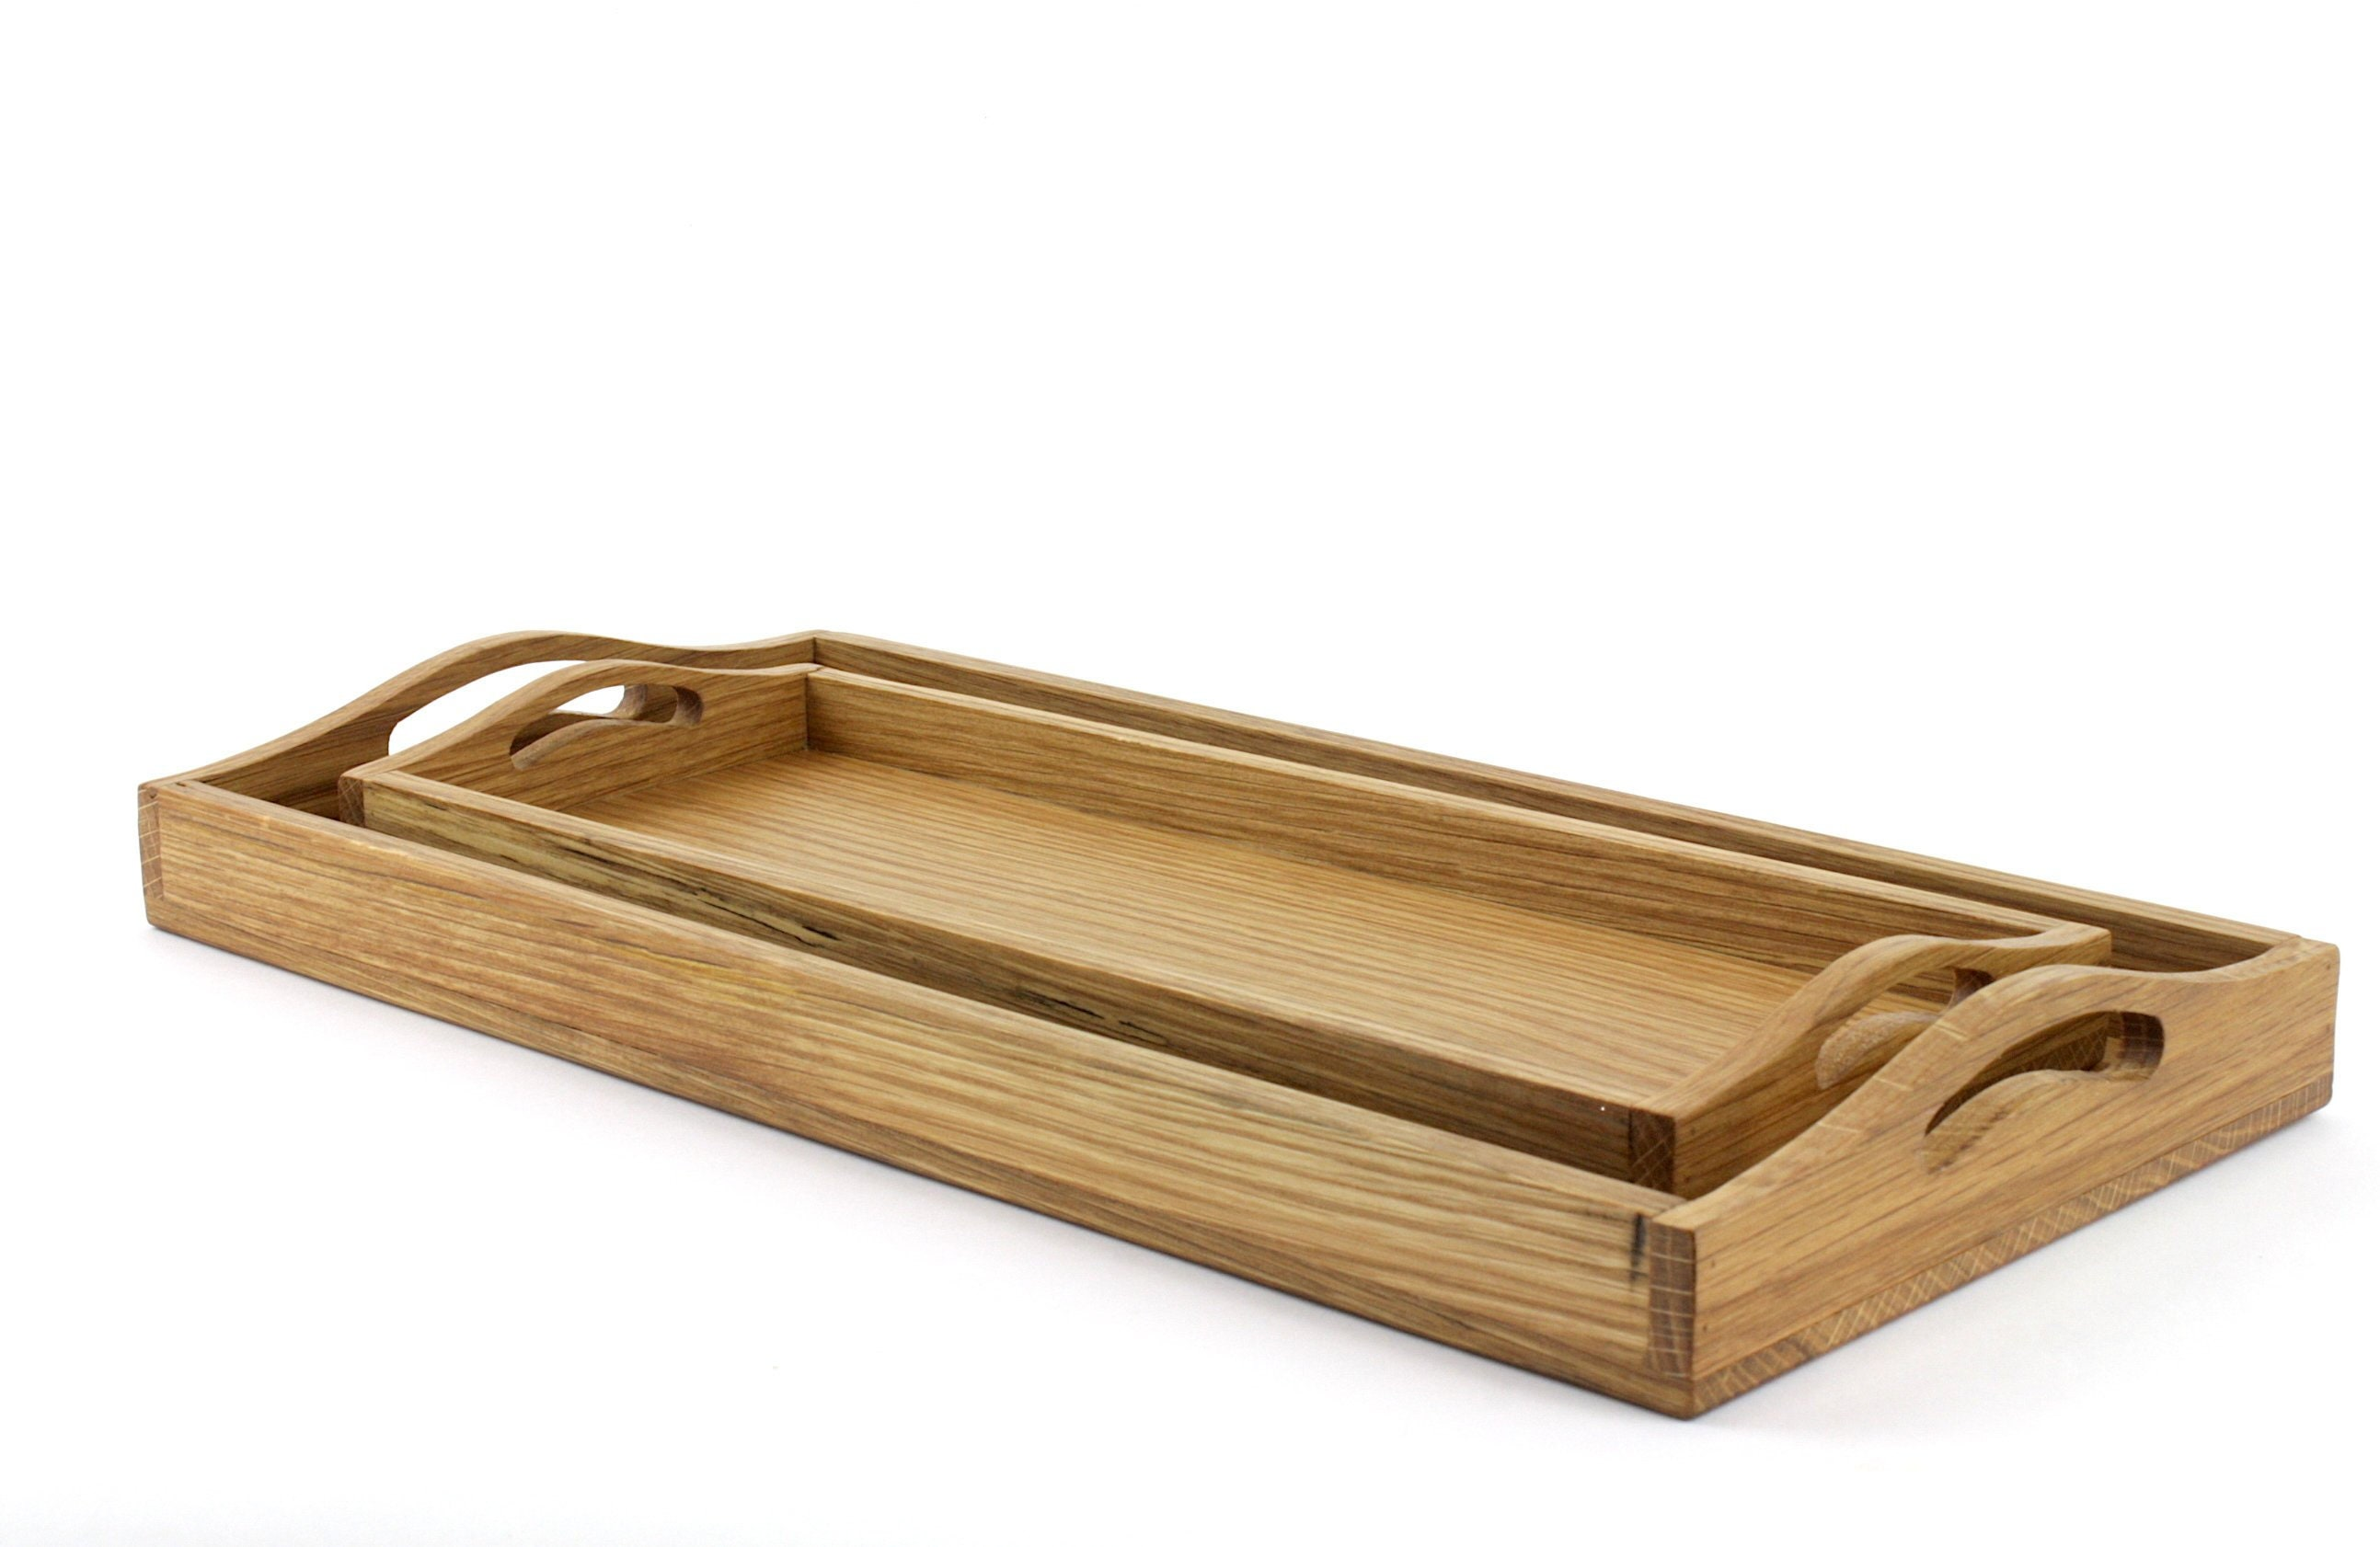 Rustic Serving Tray With Handles Wooden Serving Tray Farmhouse Serving Tray Centerpiece Decorative Tray